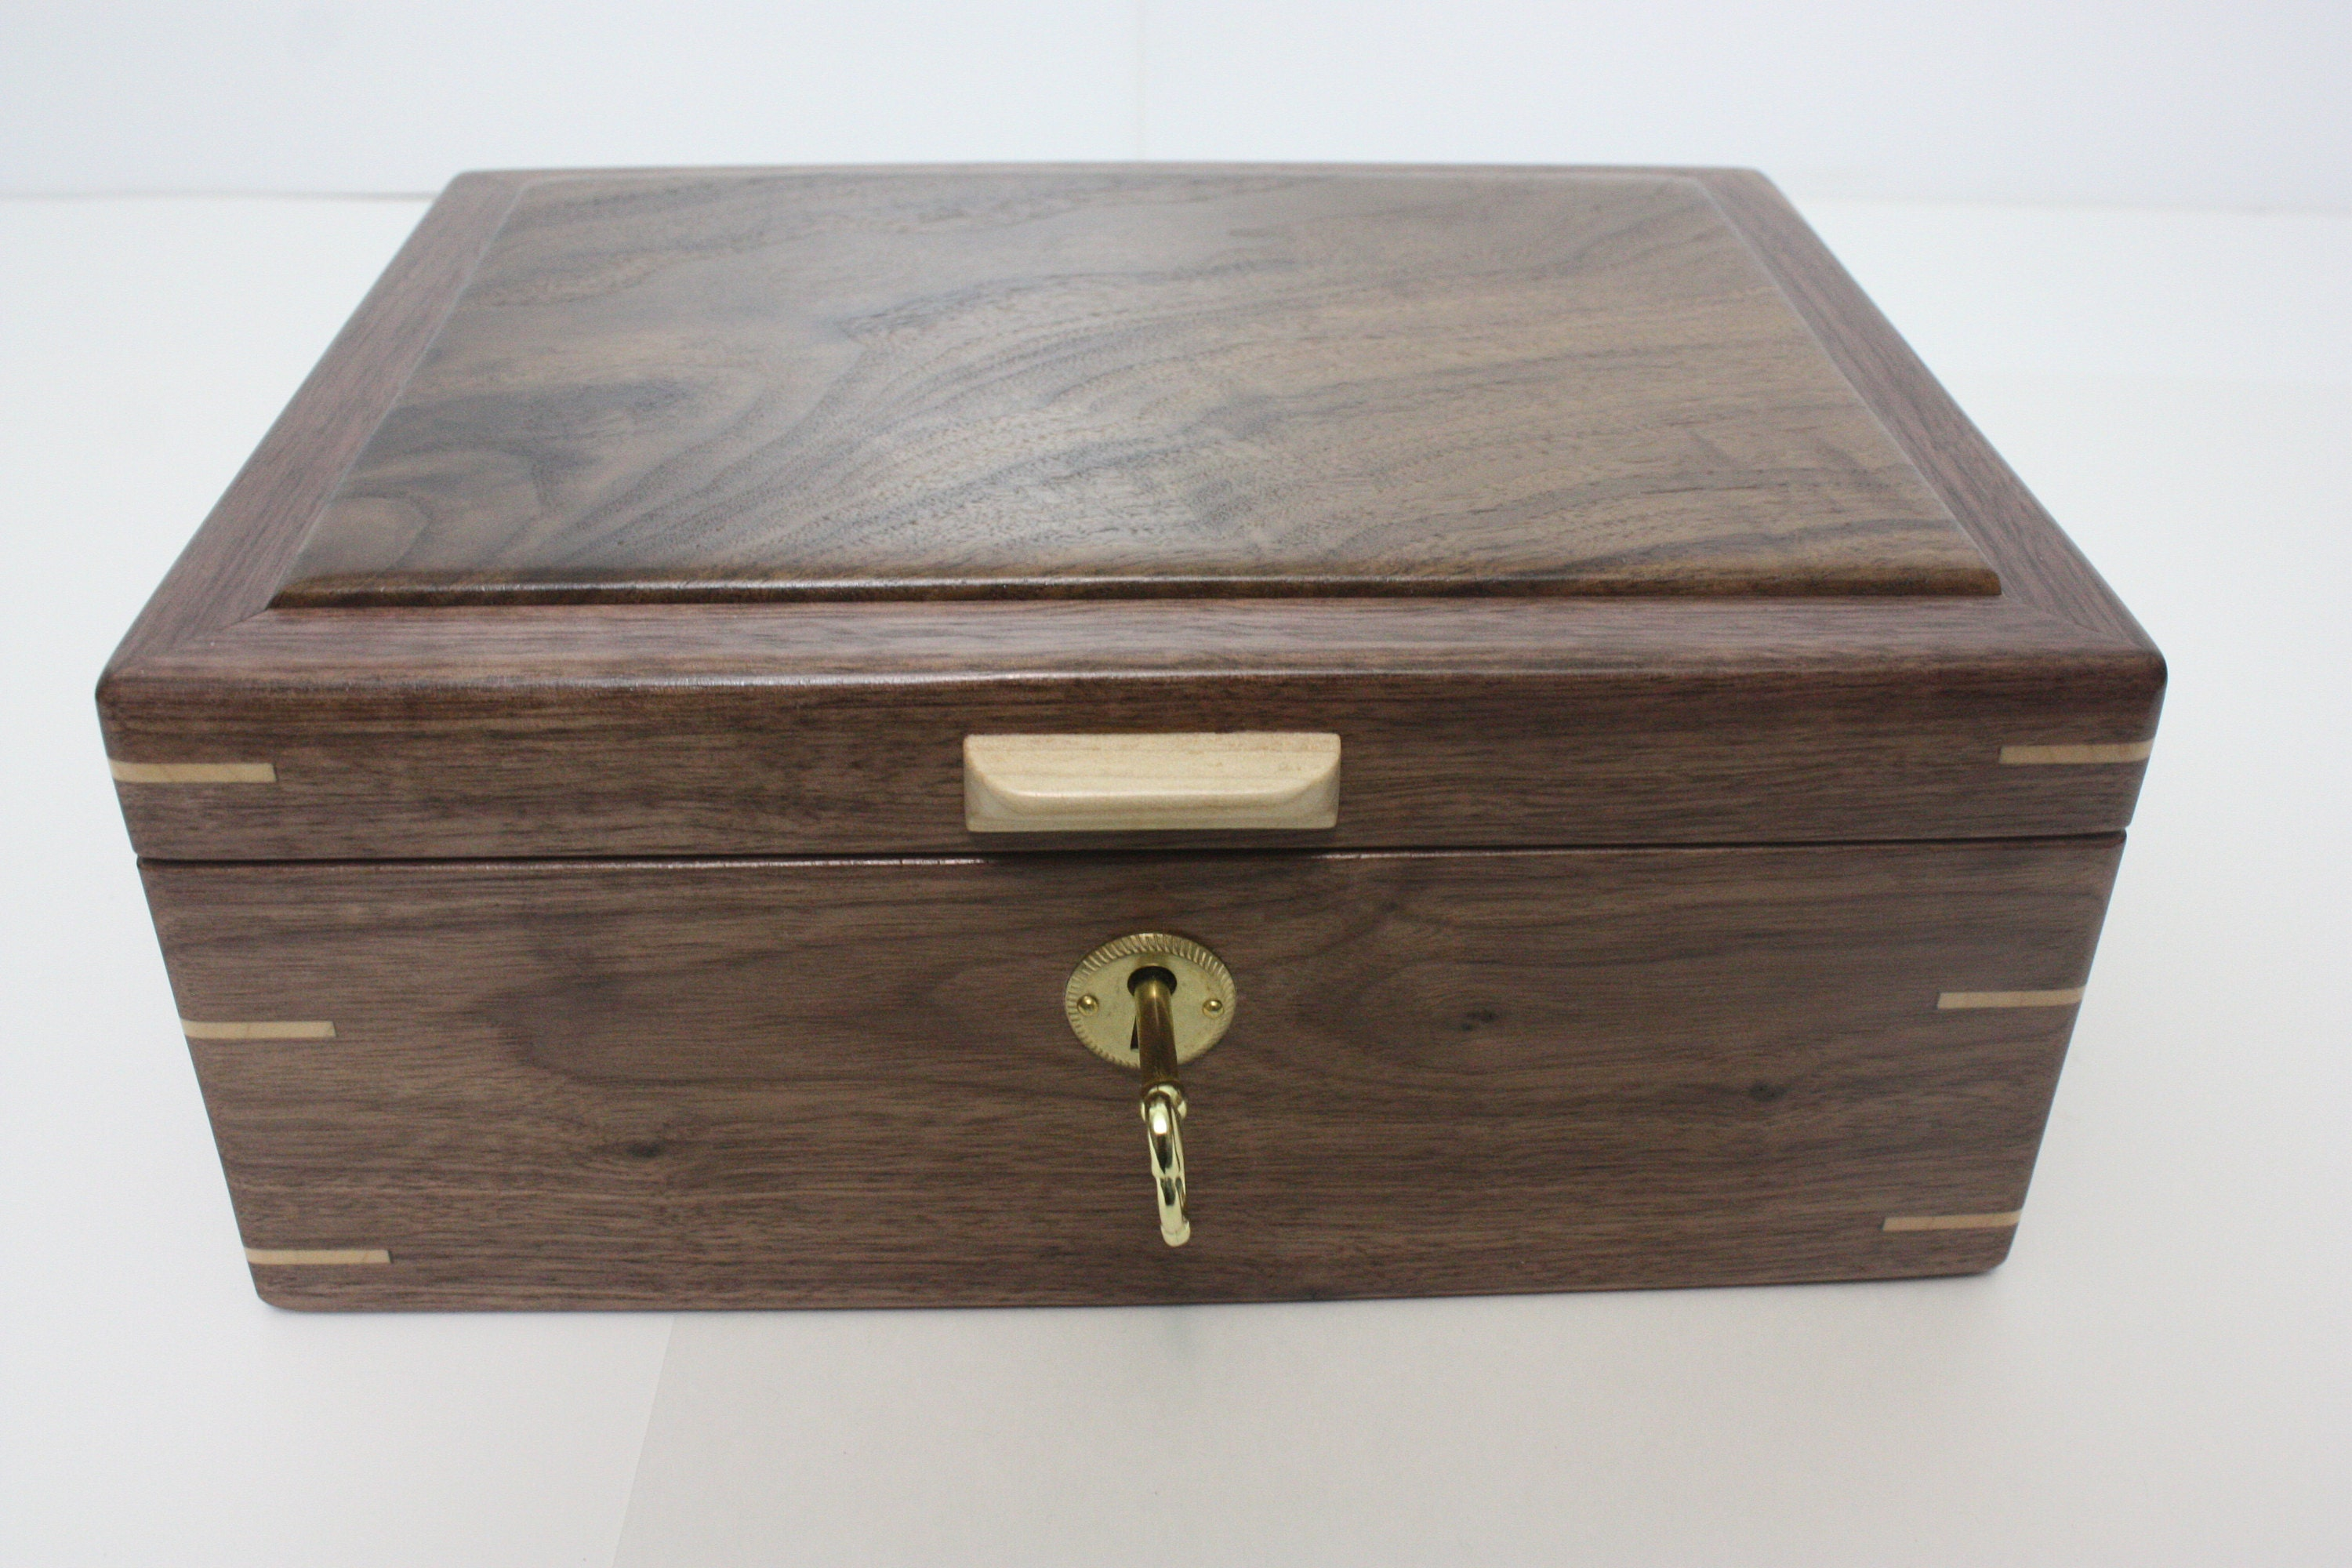 Locking Walnut Box with Maple Corner Splines